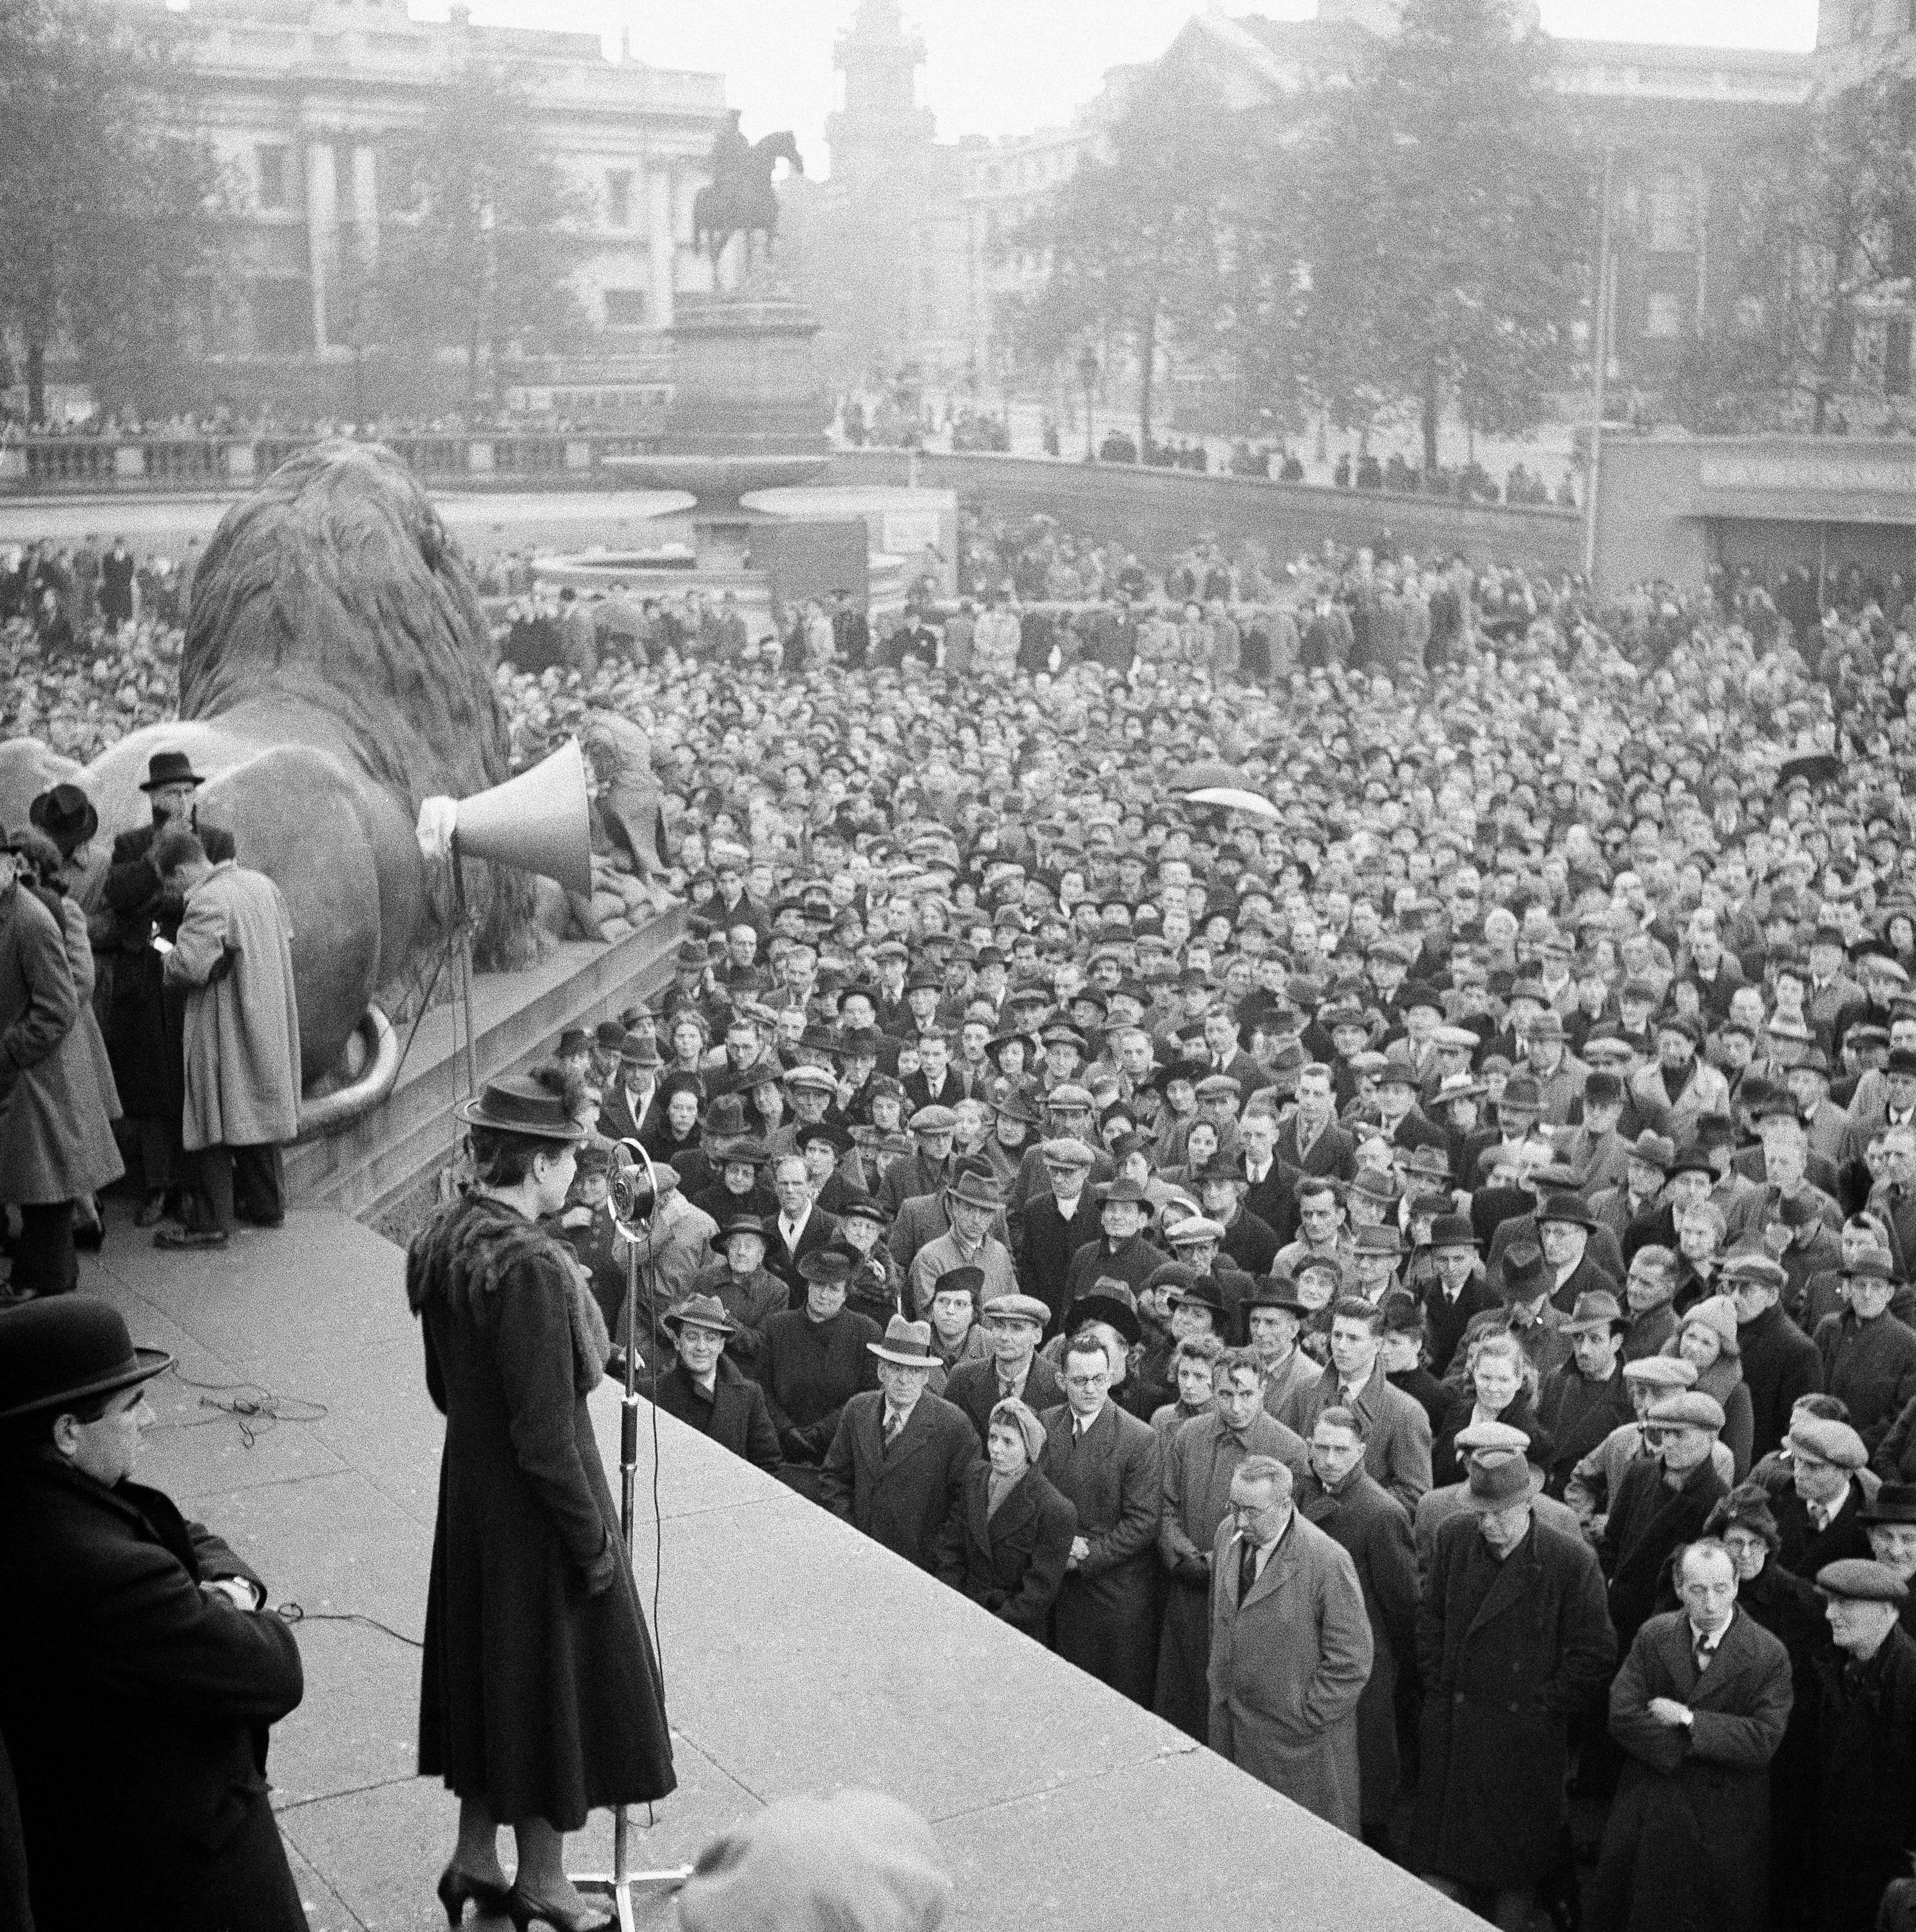 A mass meeting for 'Aid to Russia' demonstrations. There were two speakers at one time. Each speaking from a different side of the famous Nelson monument in Hyde Park, London, Dec. 19, 1941.